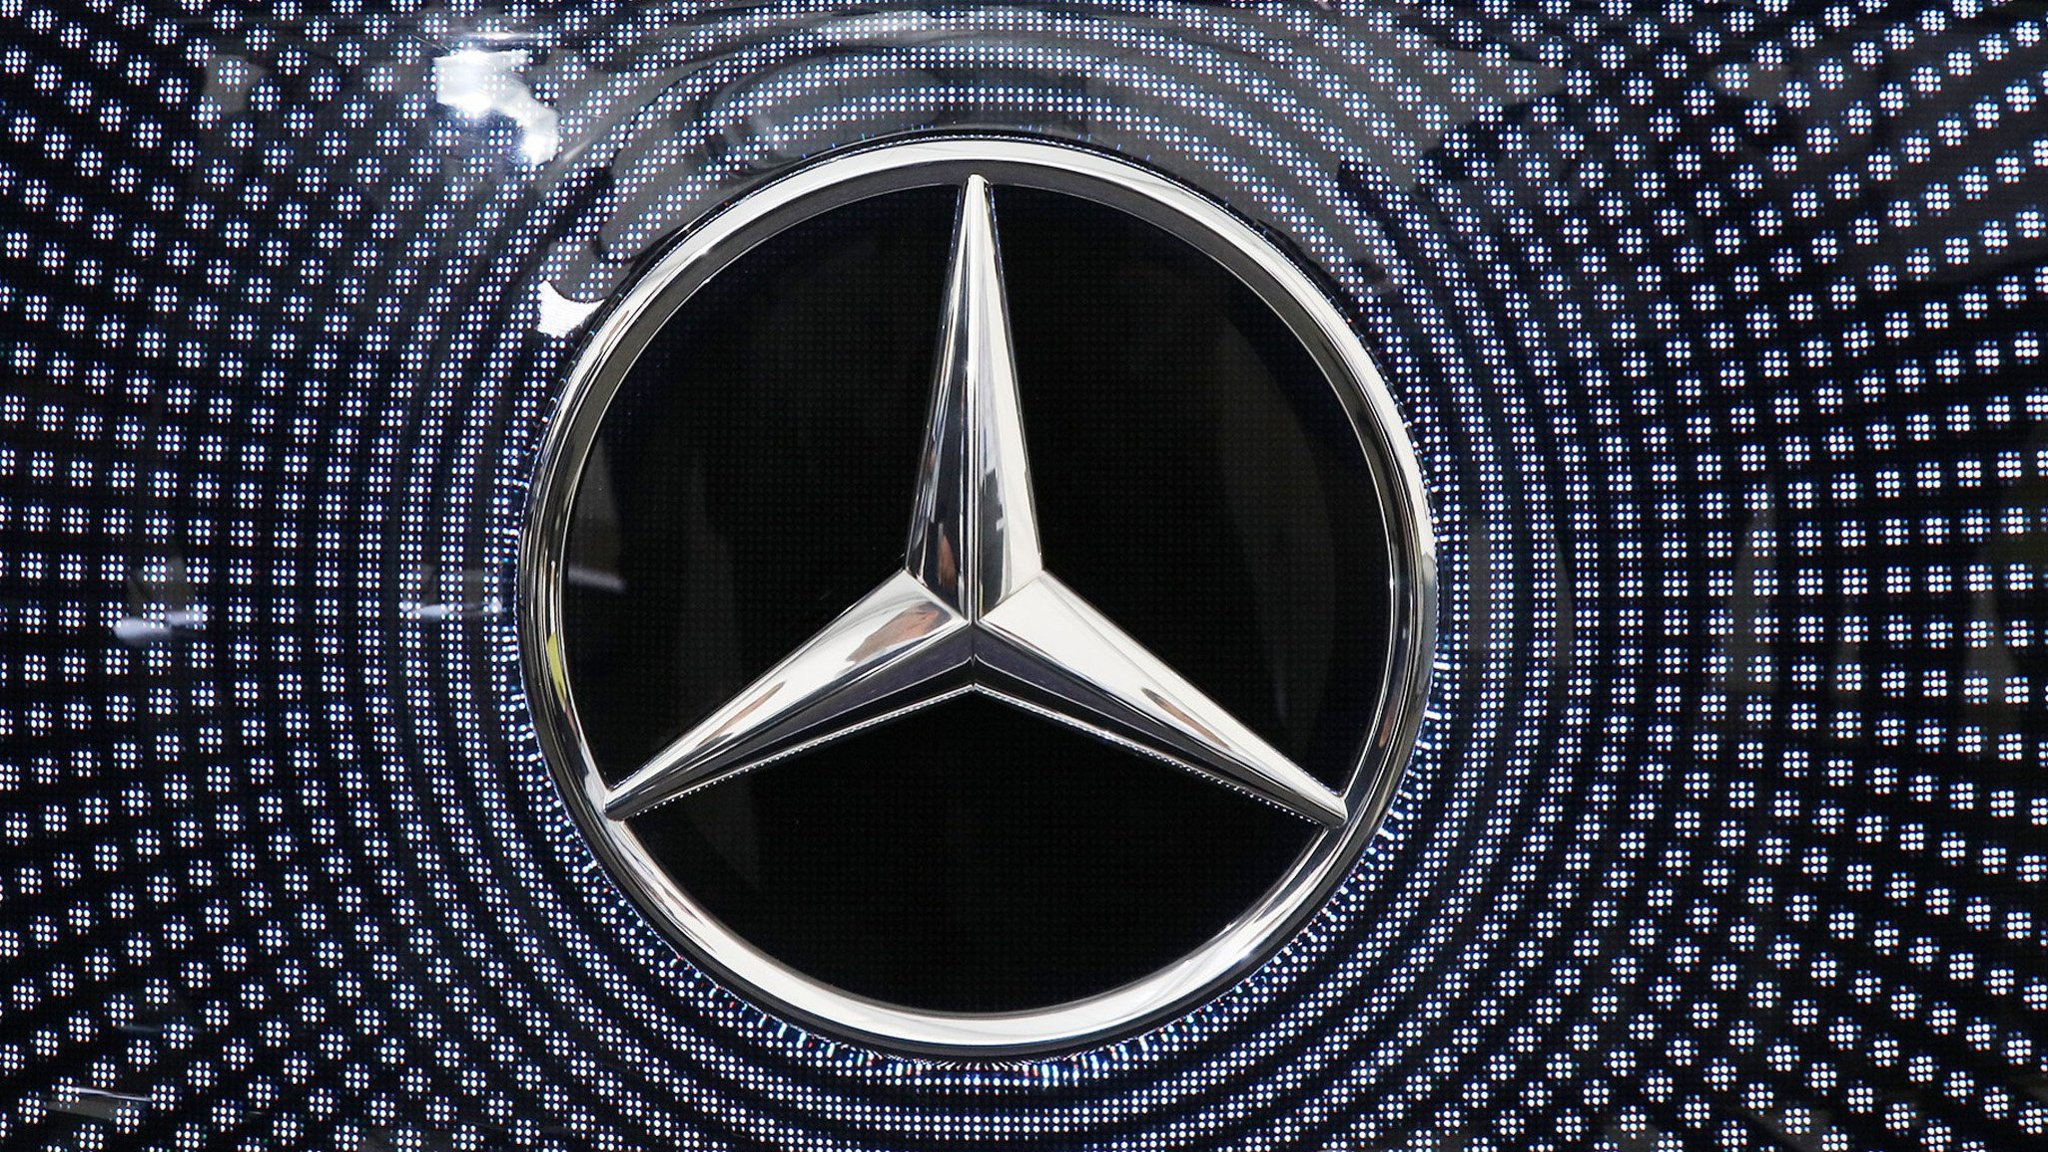 Mercedes benz invests 1bn to make electric cars in us voltagebd Image collections